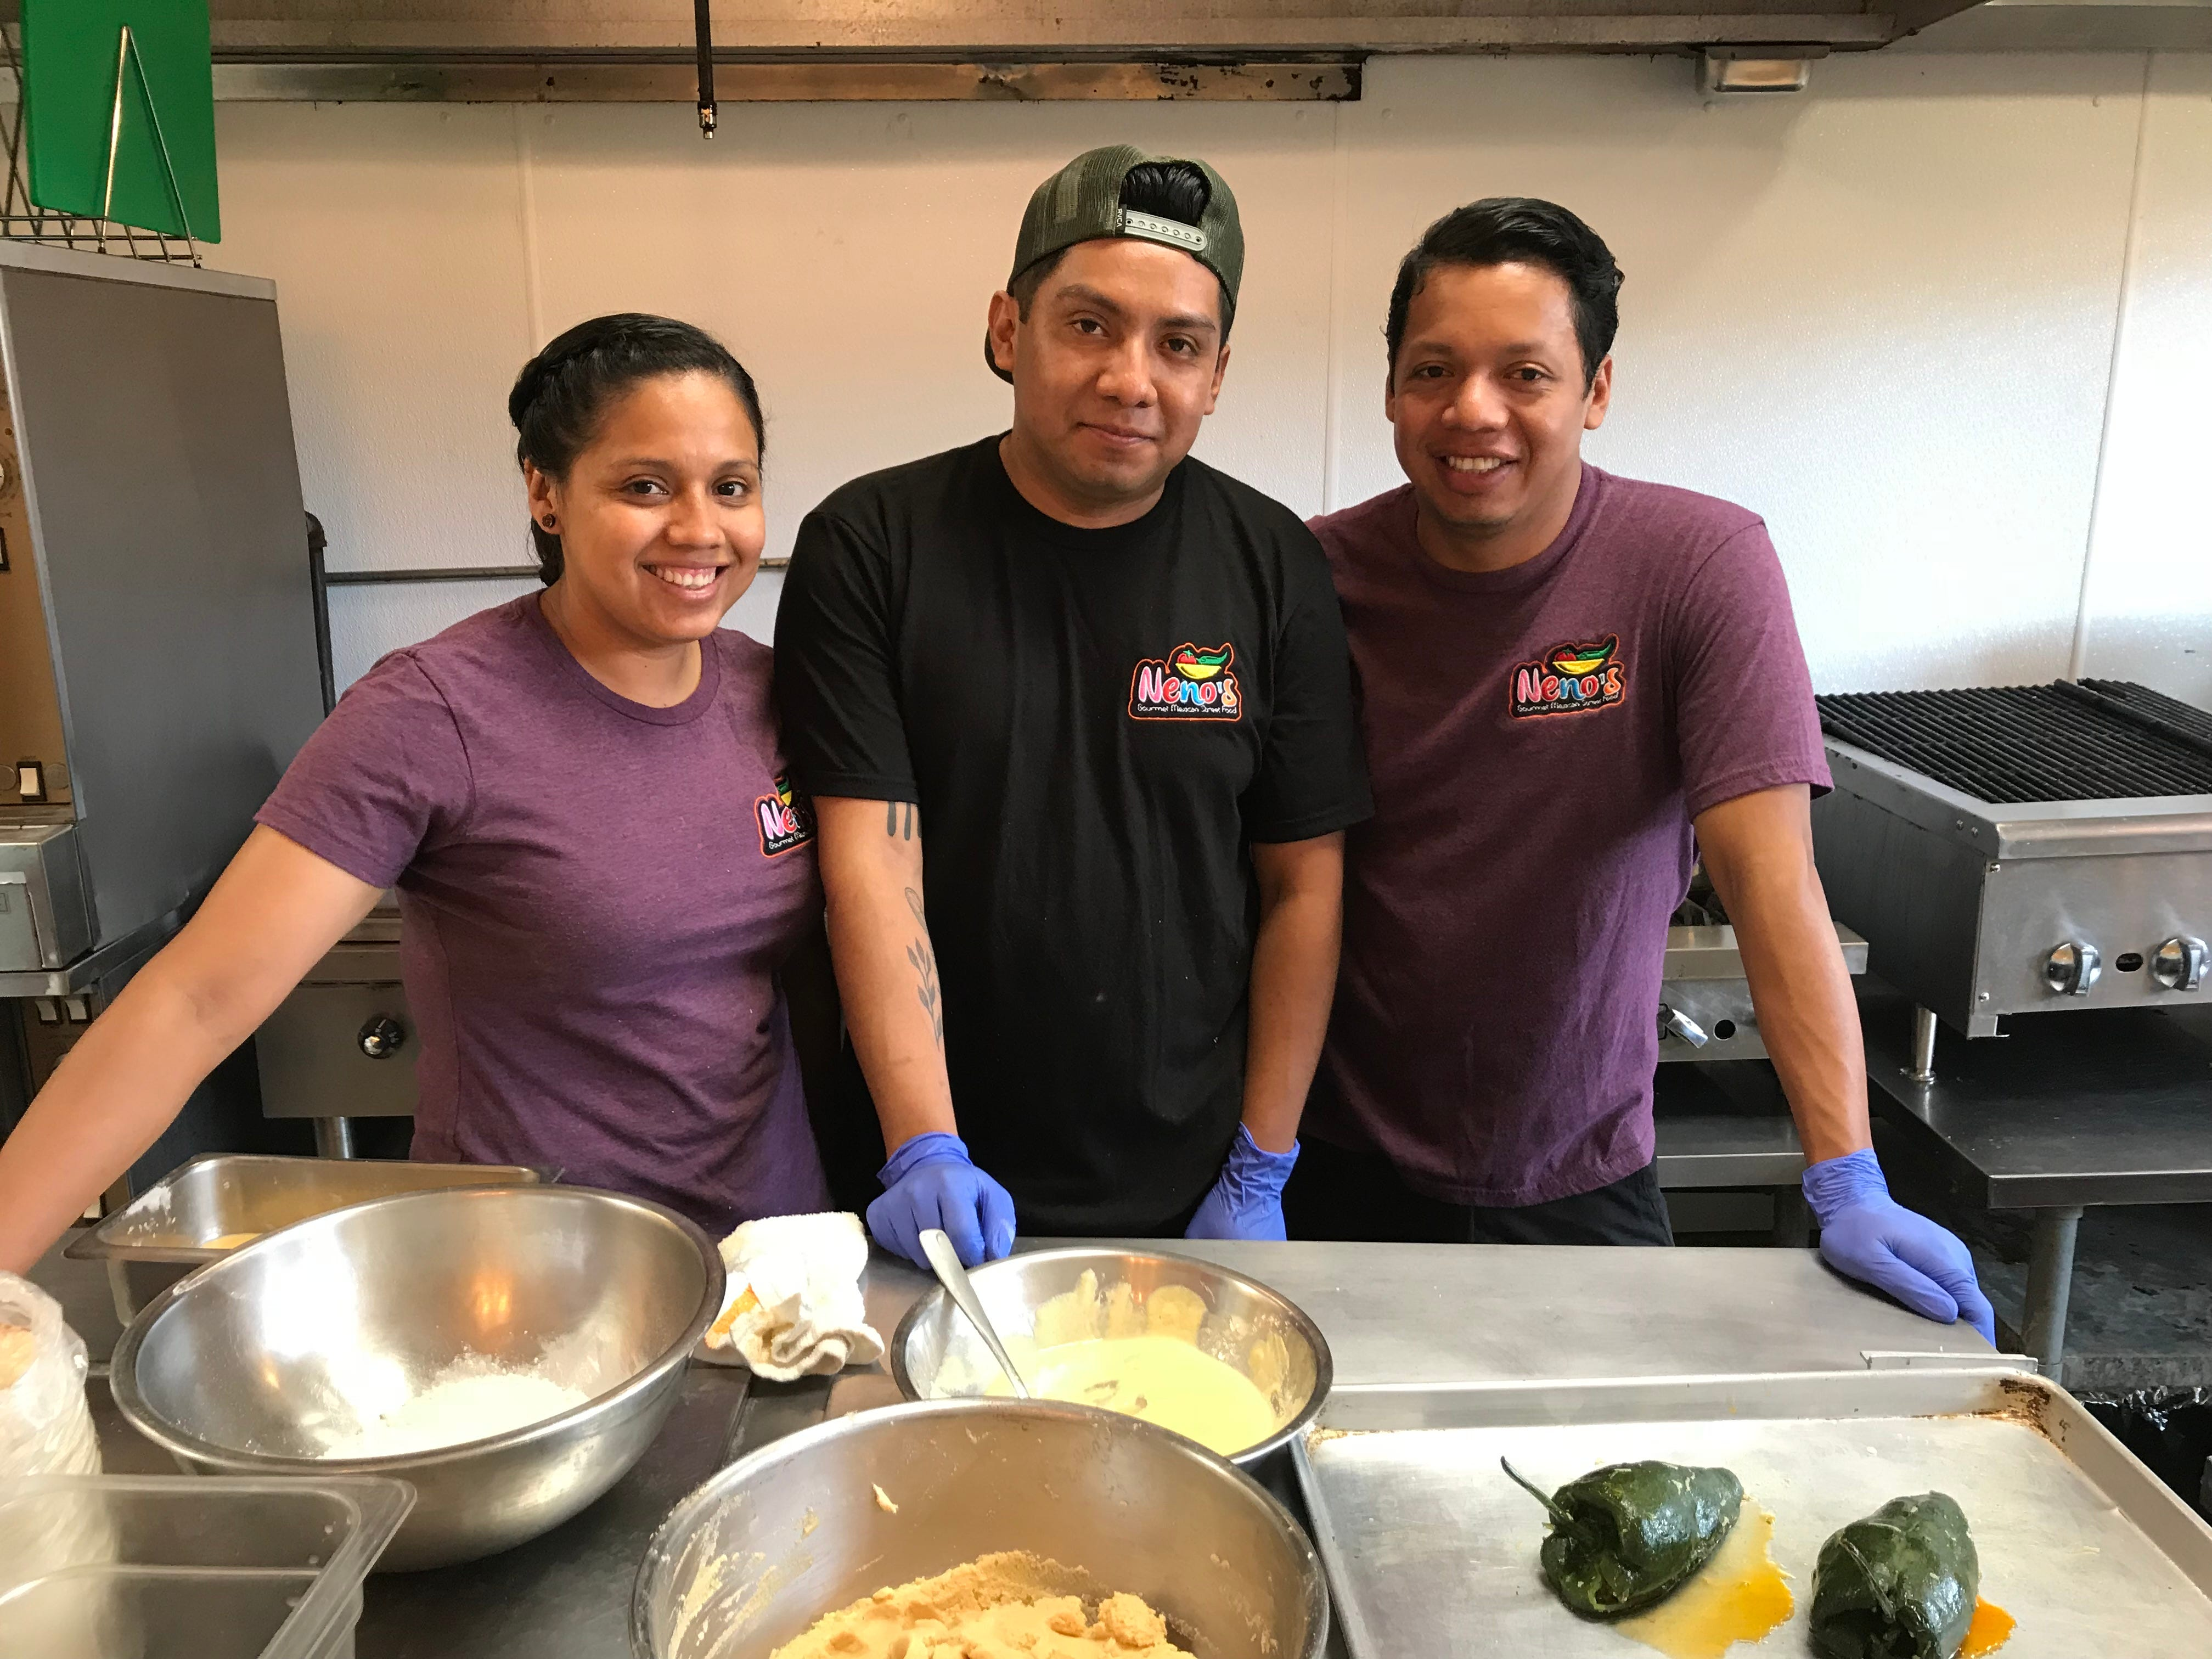 Siblings Ojayra, Fidelio and Eden Rita work together at Neno's.